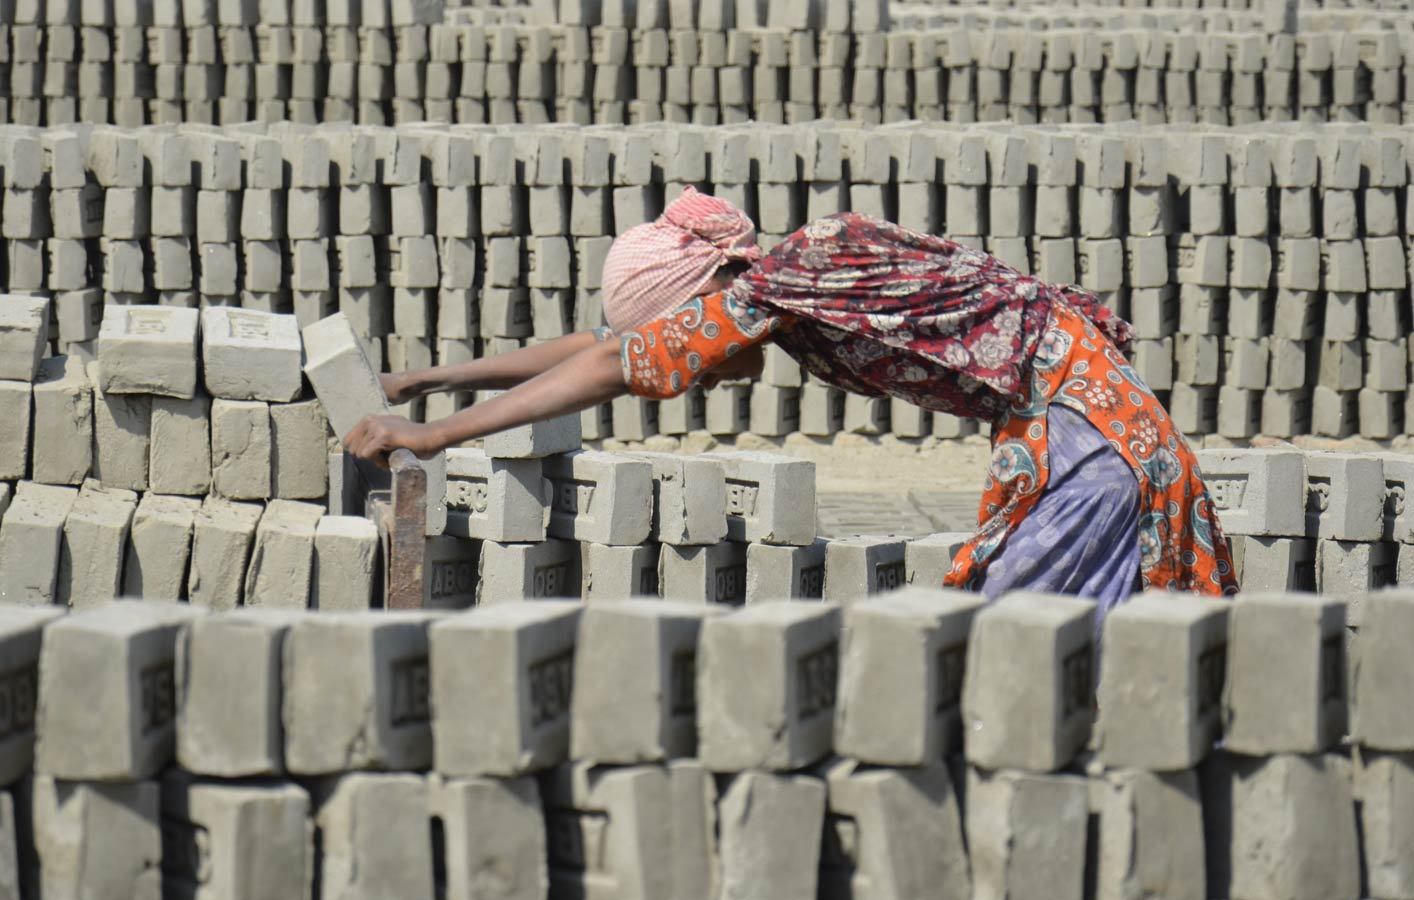 <p>A brick kiln worker pushes a cart of green bricks (week-old, air-dried bricks) among stacks of drying bricks in Savar district.</p>